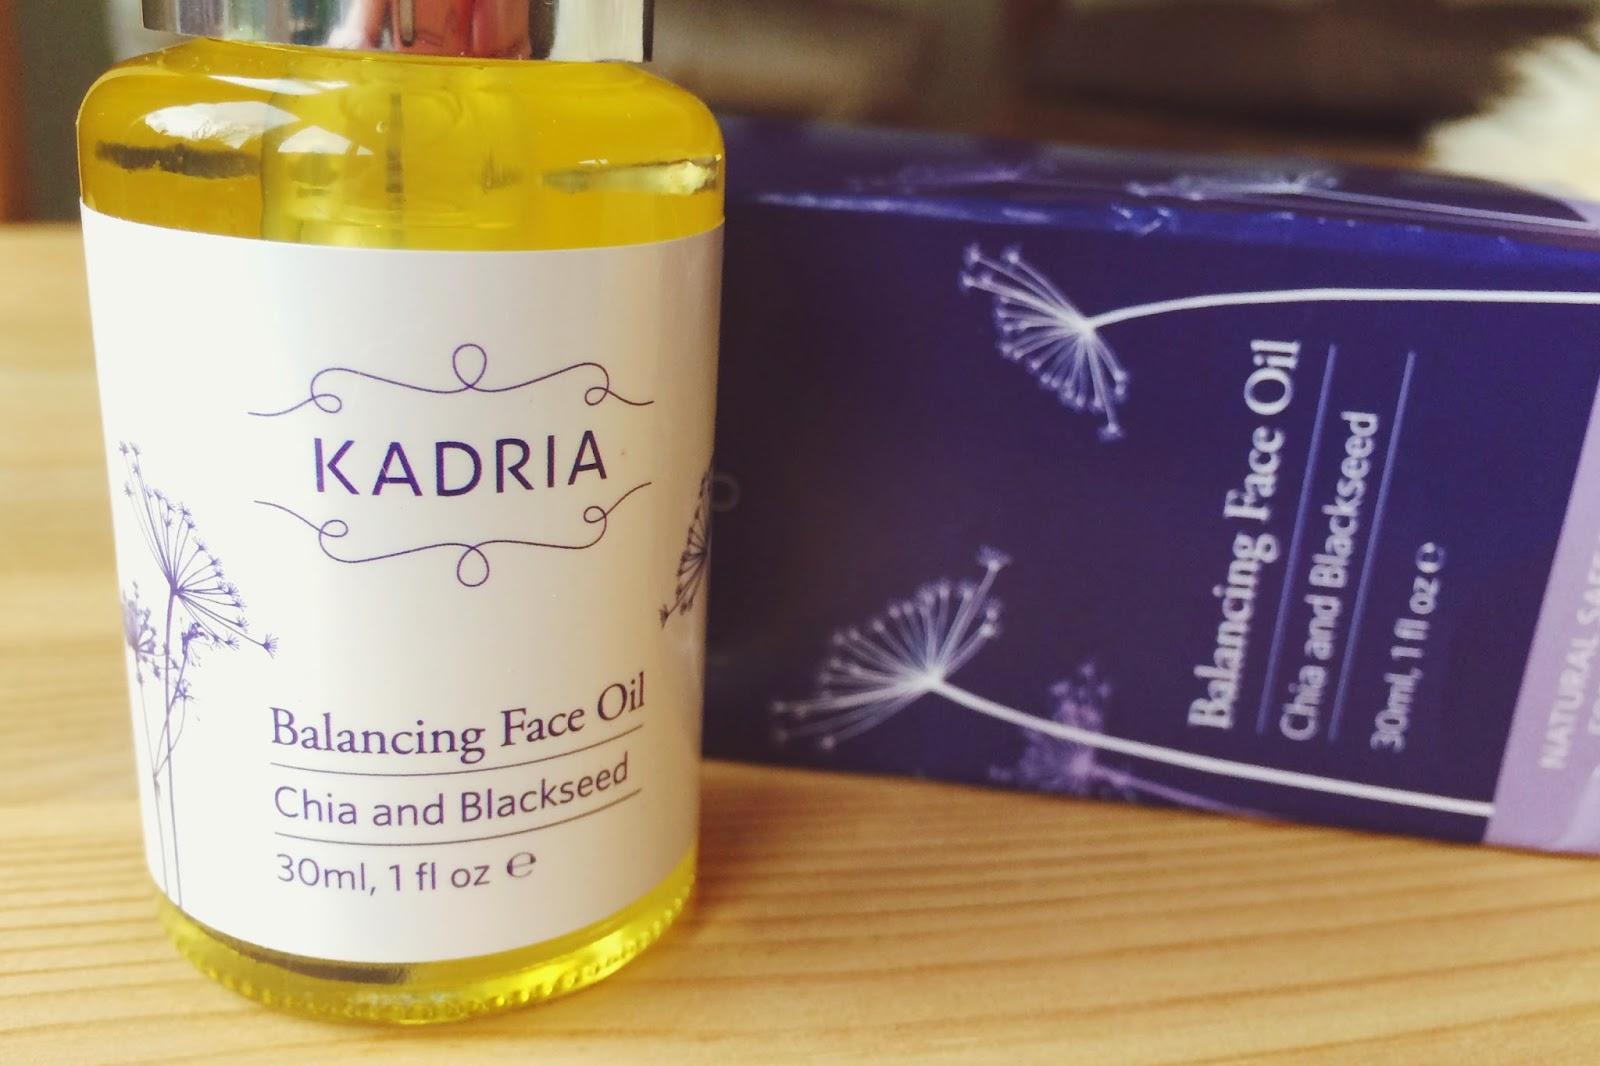 FashionFake, a UK fashion and lifestyle blog. Kadria Balancing Face Oil is a natural oil made with chia and blackseed - FashionFake reviews!